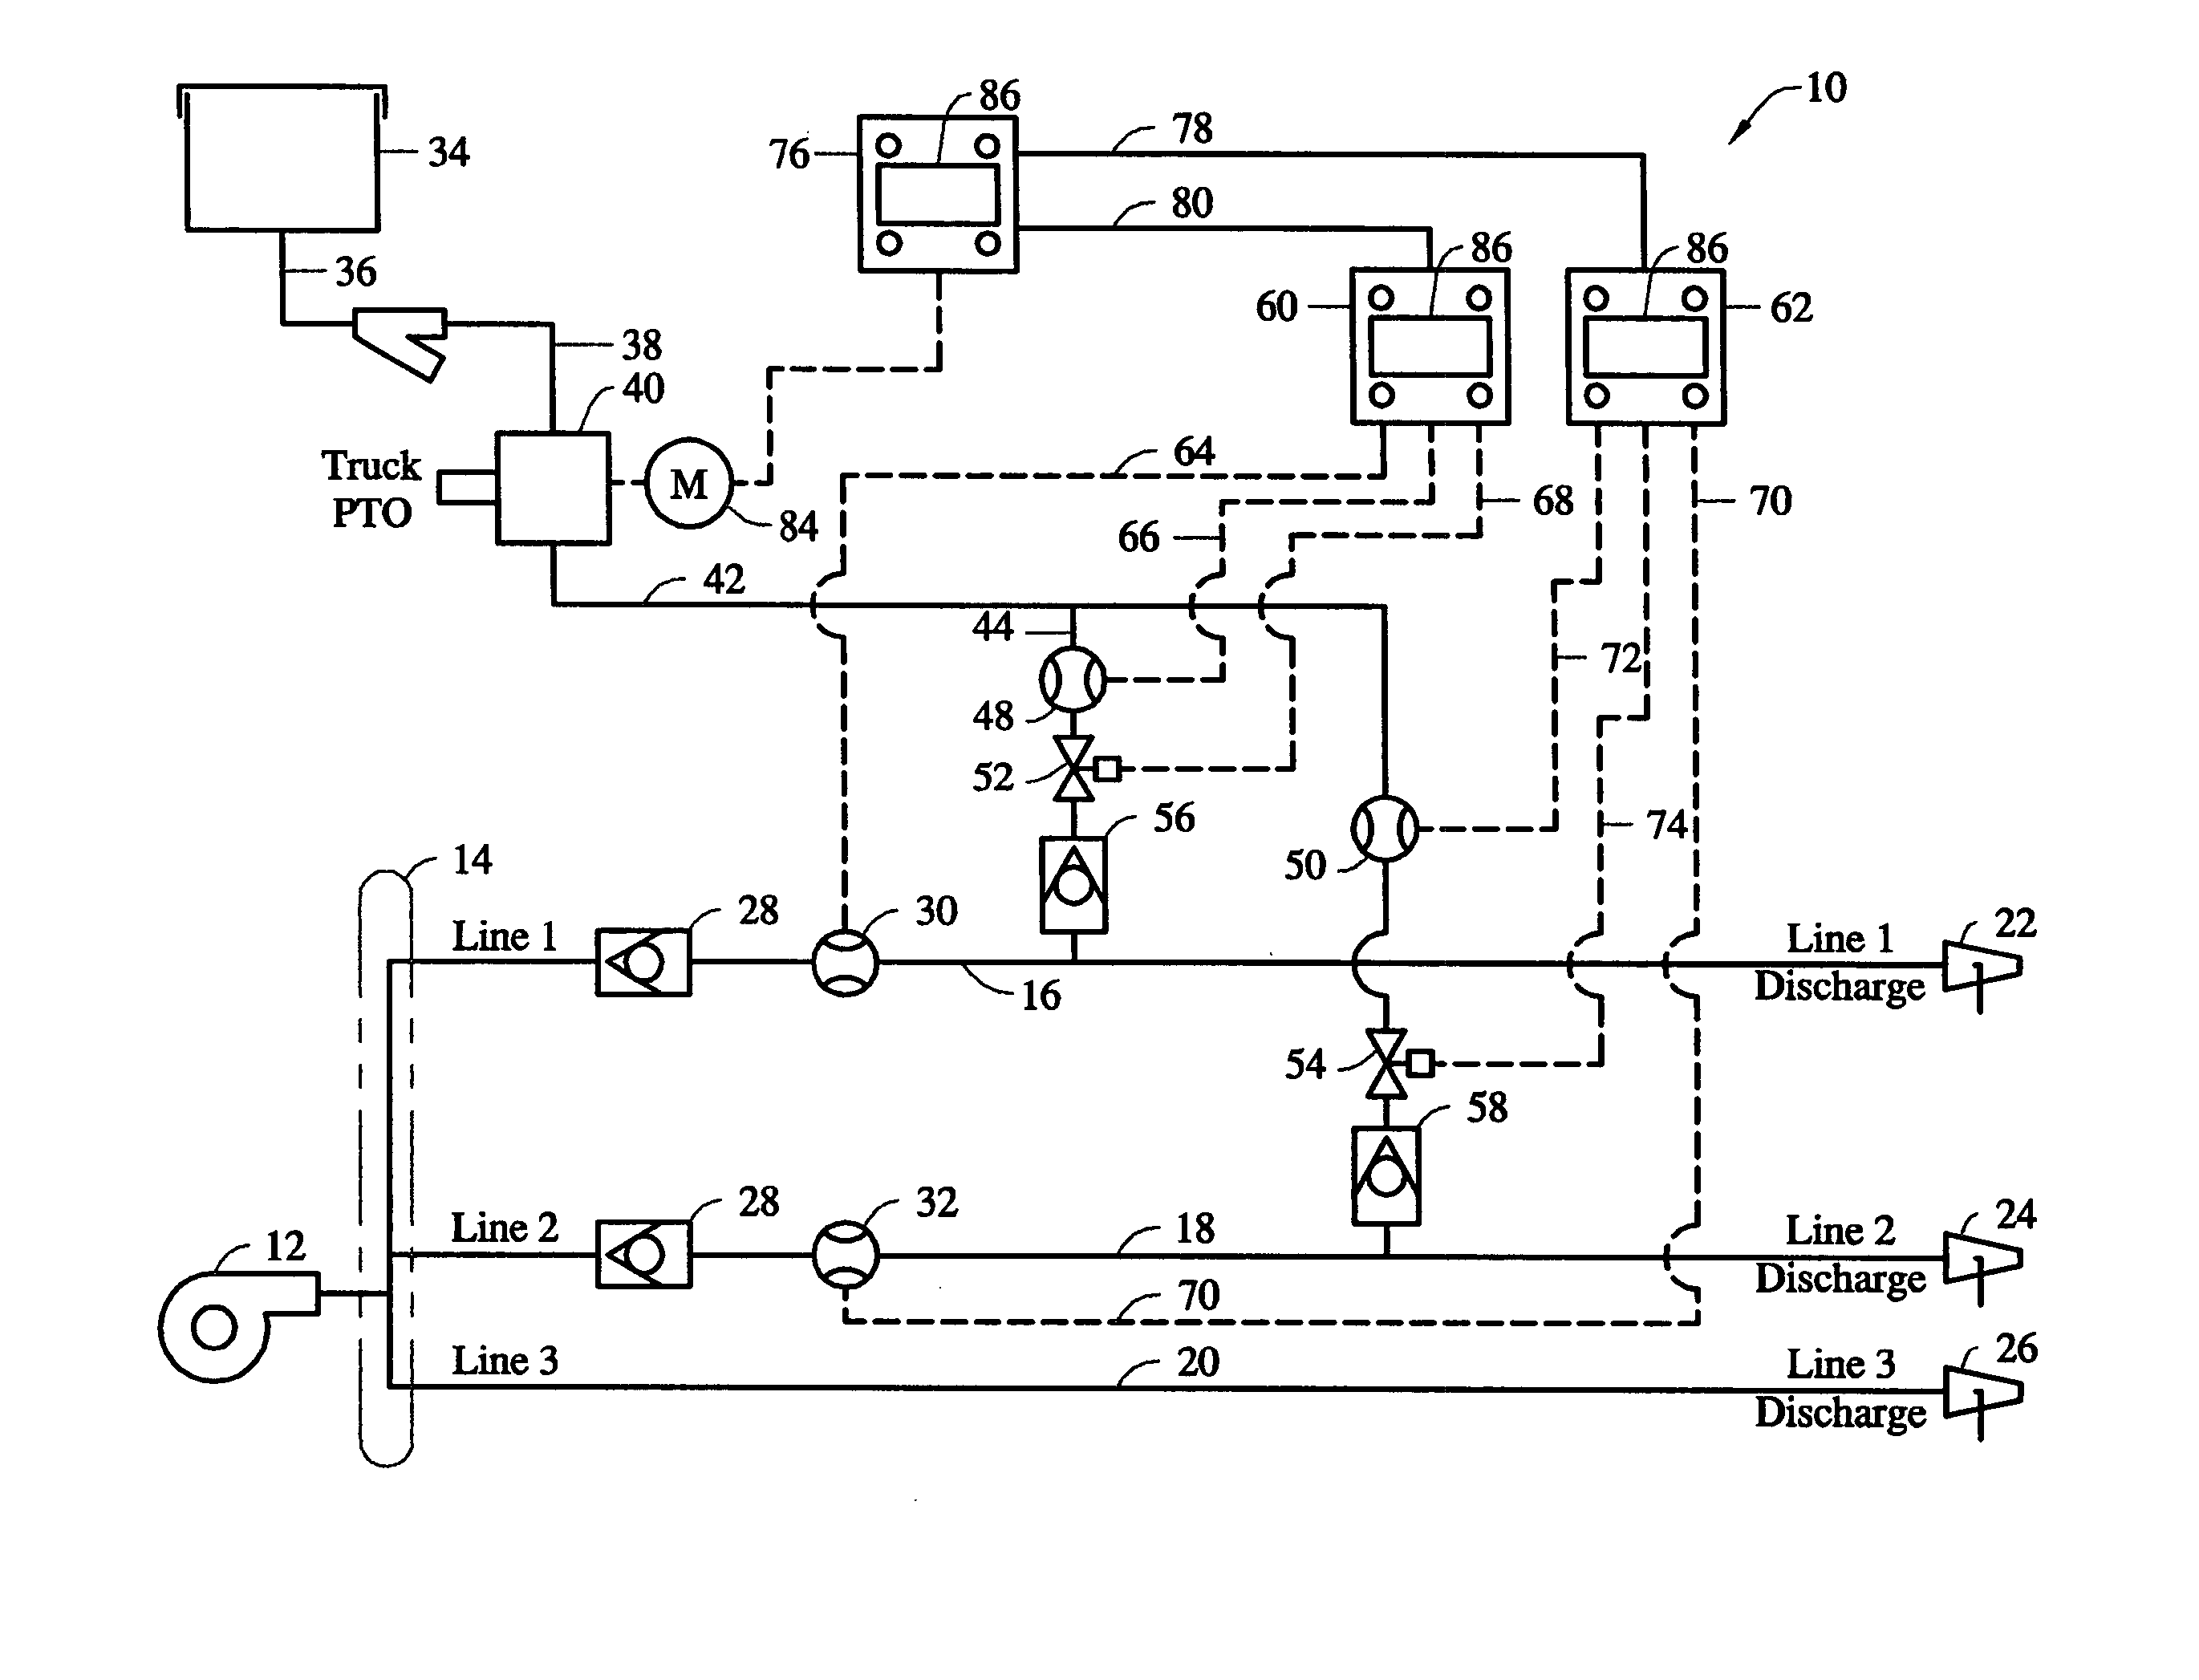 US20050045345A1 20050303 D00000 patent us20050045345 high flow foam system for fire fighting ansul system wiring schematic at soozxer.org